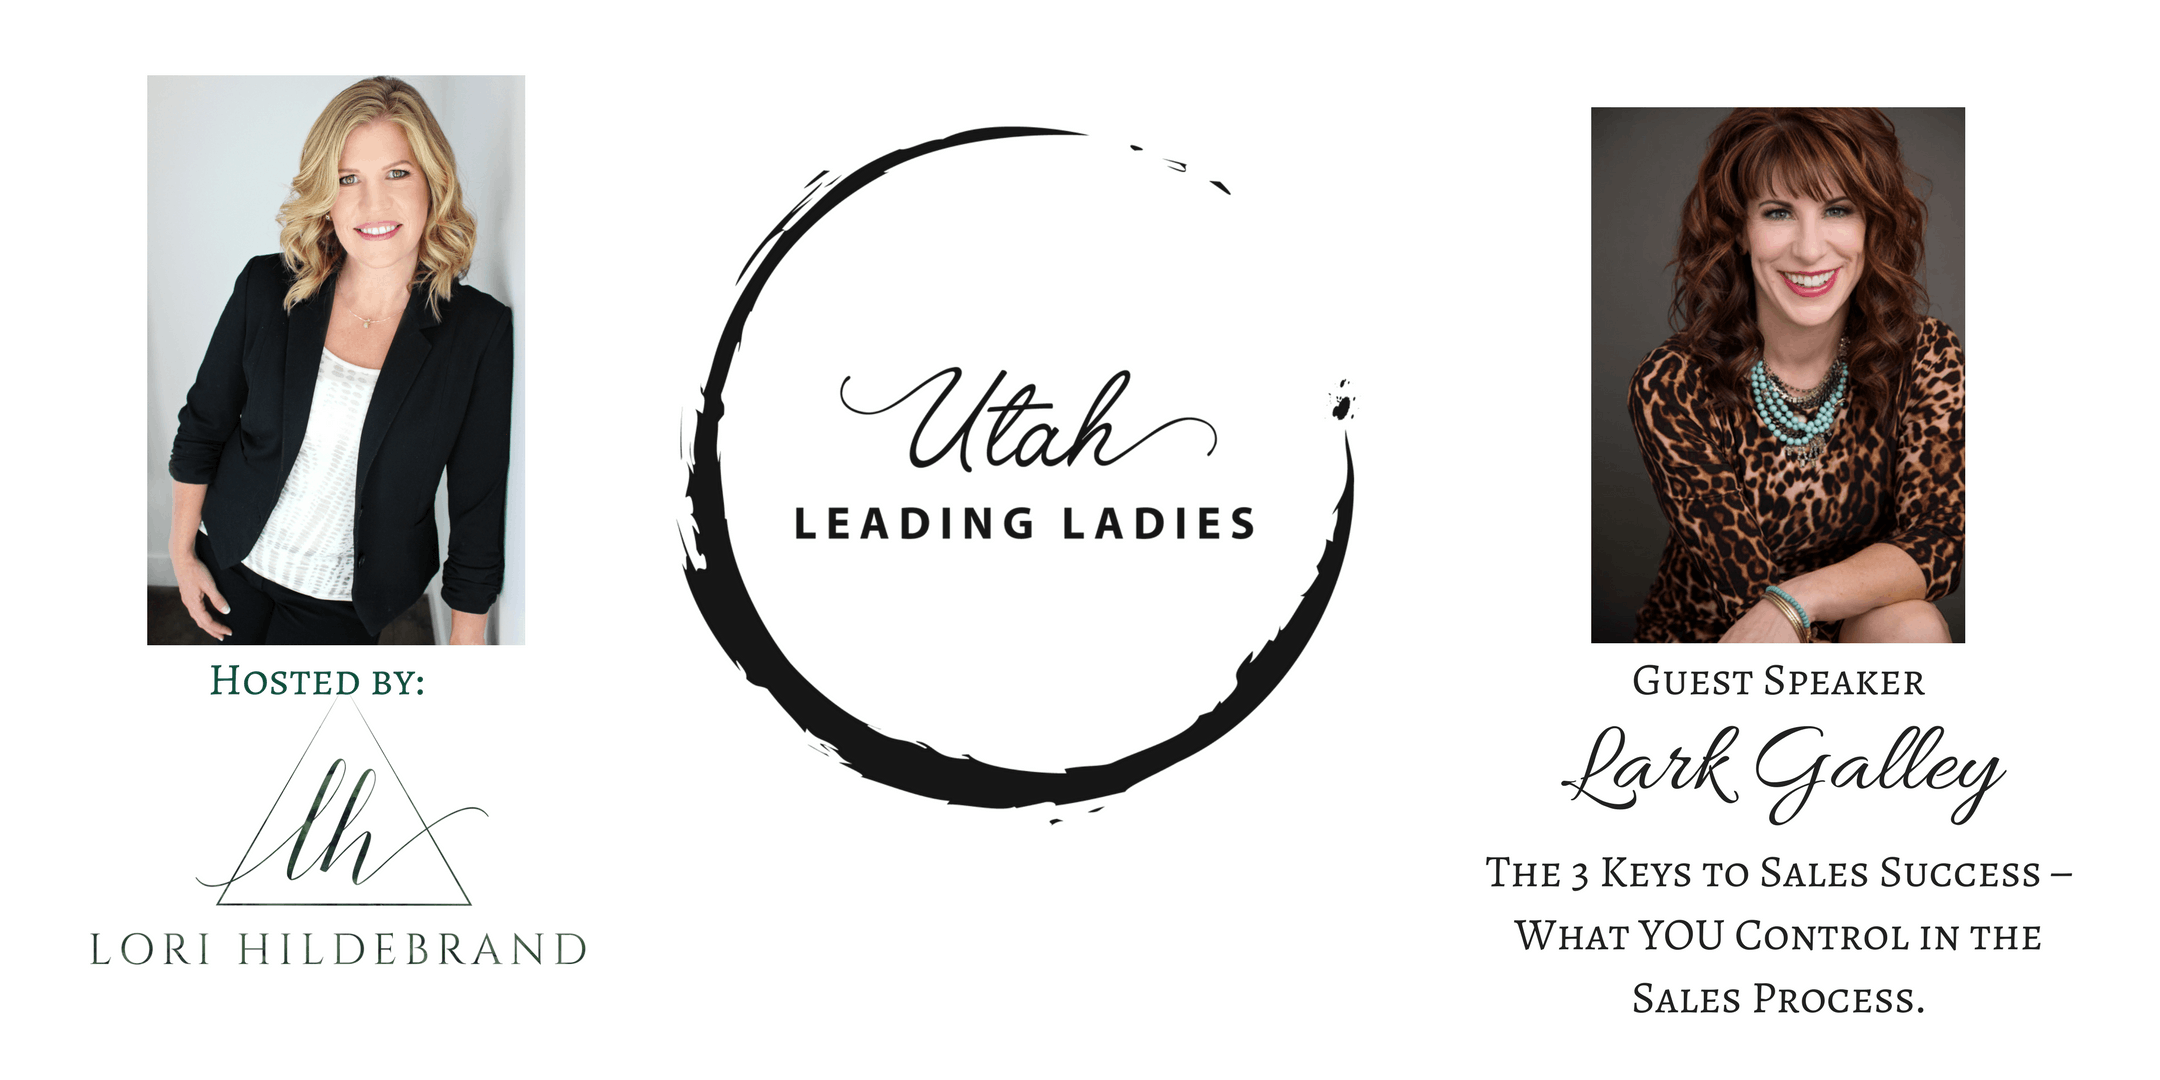 Utah Leading Ladies Event Networking & Education for Women in Business